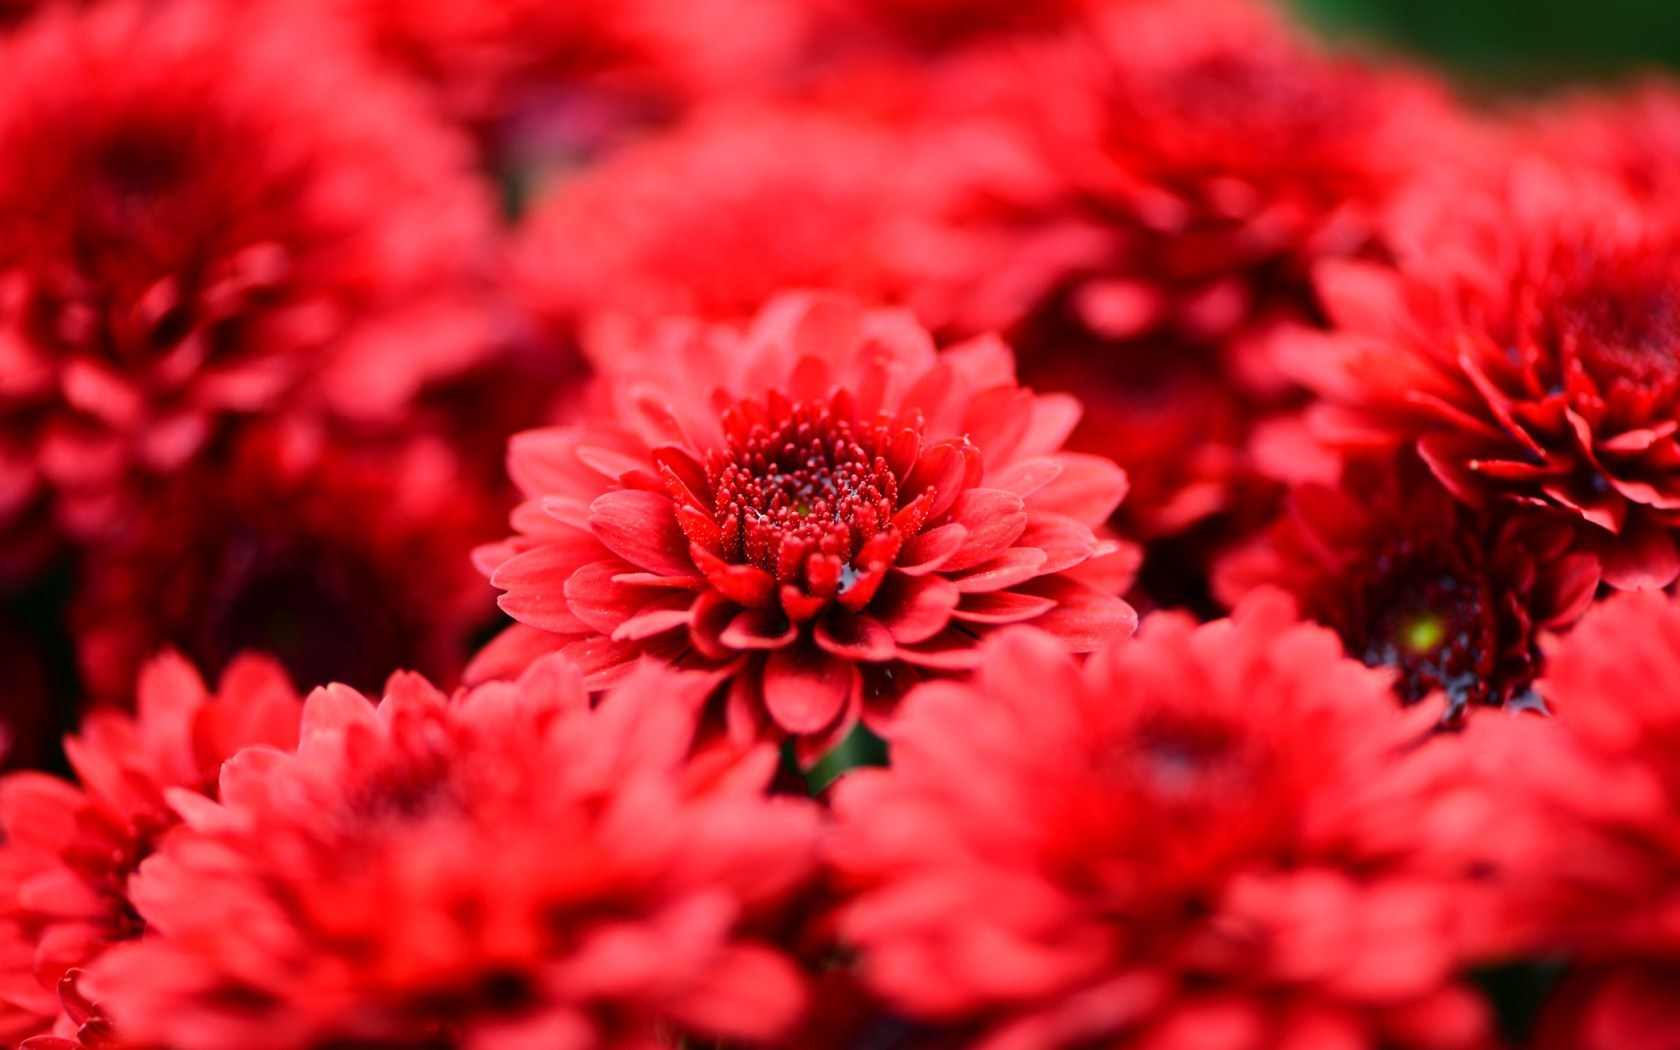 Chrysanthemums Red Flowers Petals Close-Up